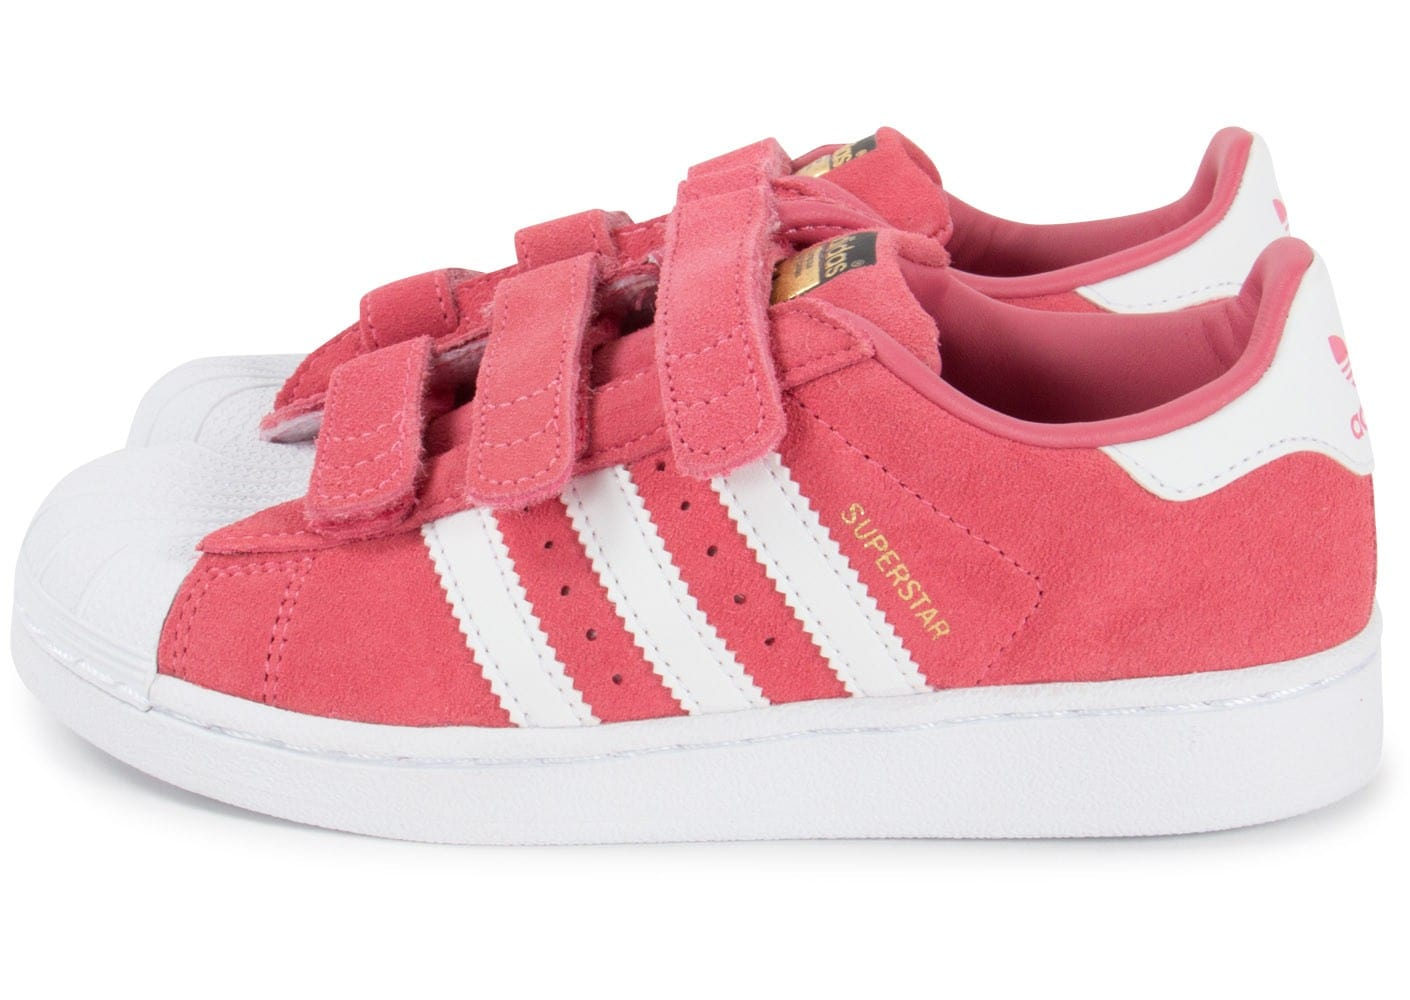 adidas superstar rose 35